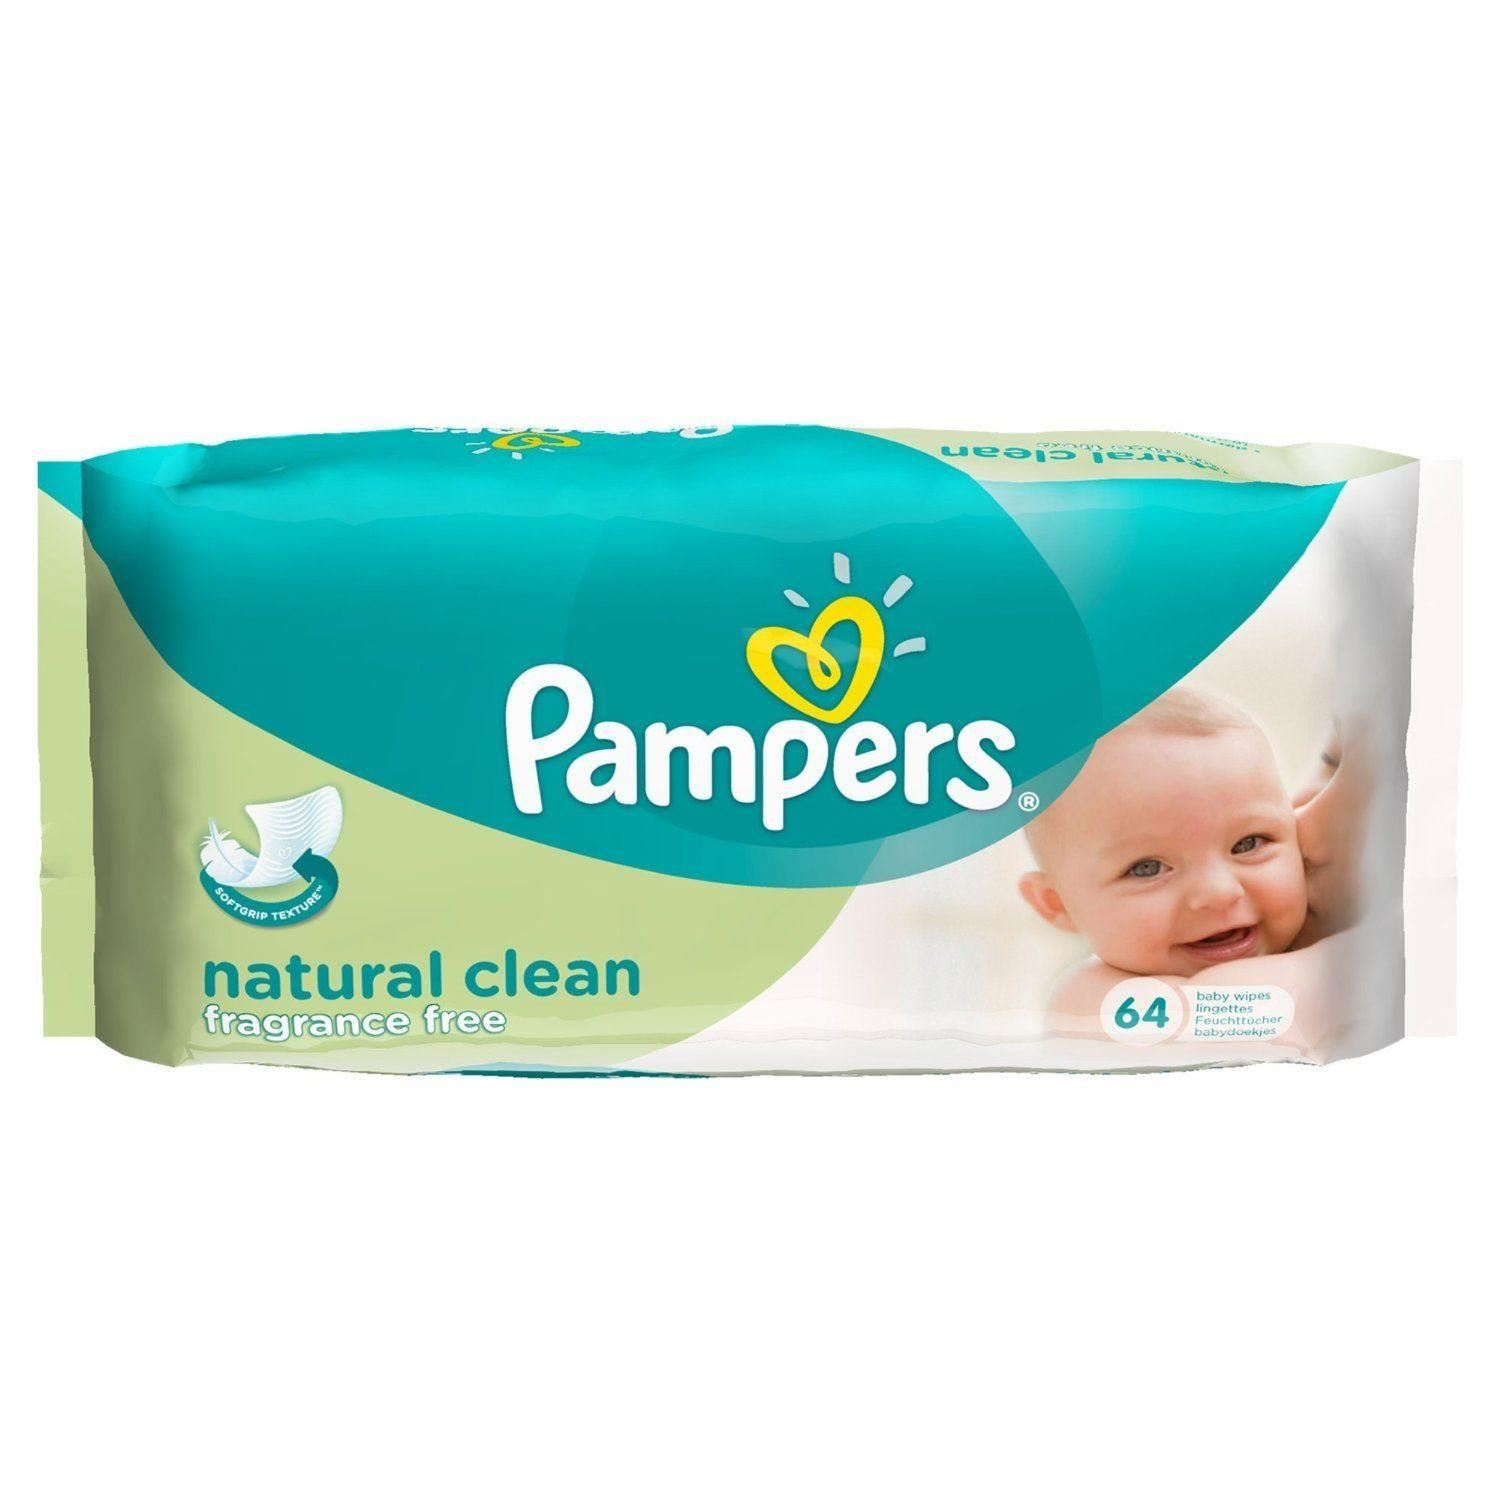 Pampers Natural Clean Fragrance Free Baby Wipes 64 Wipes